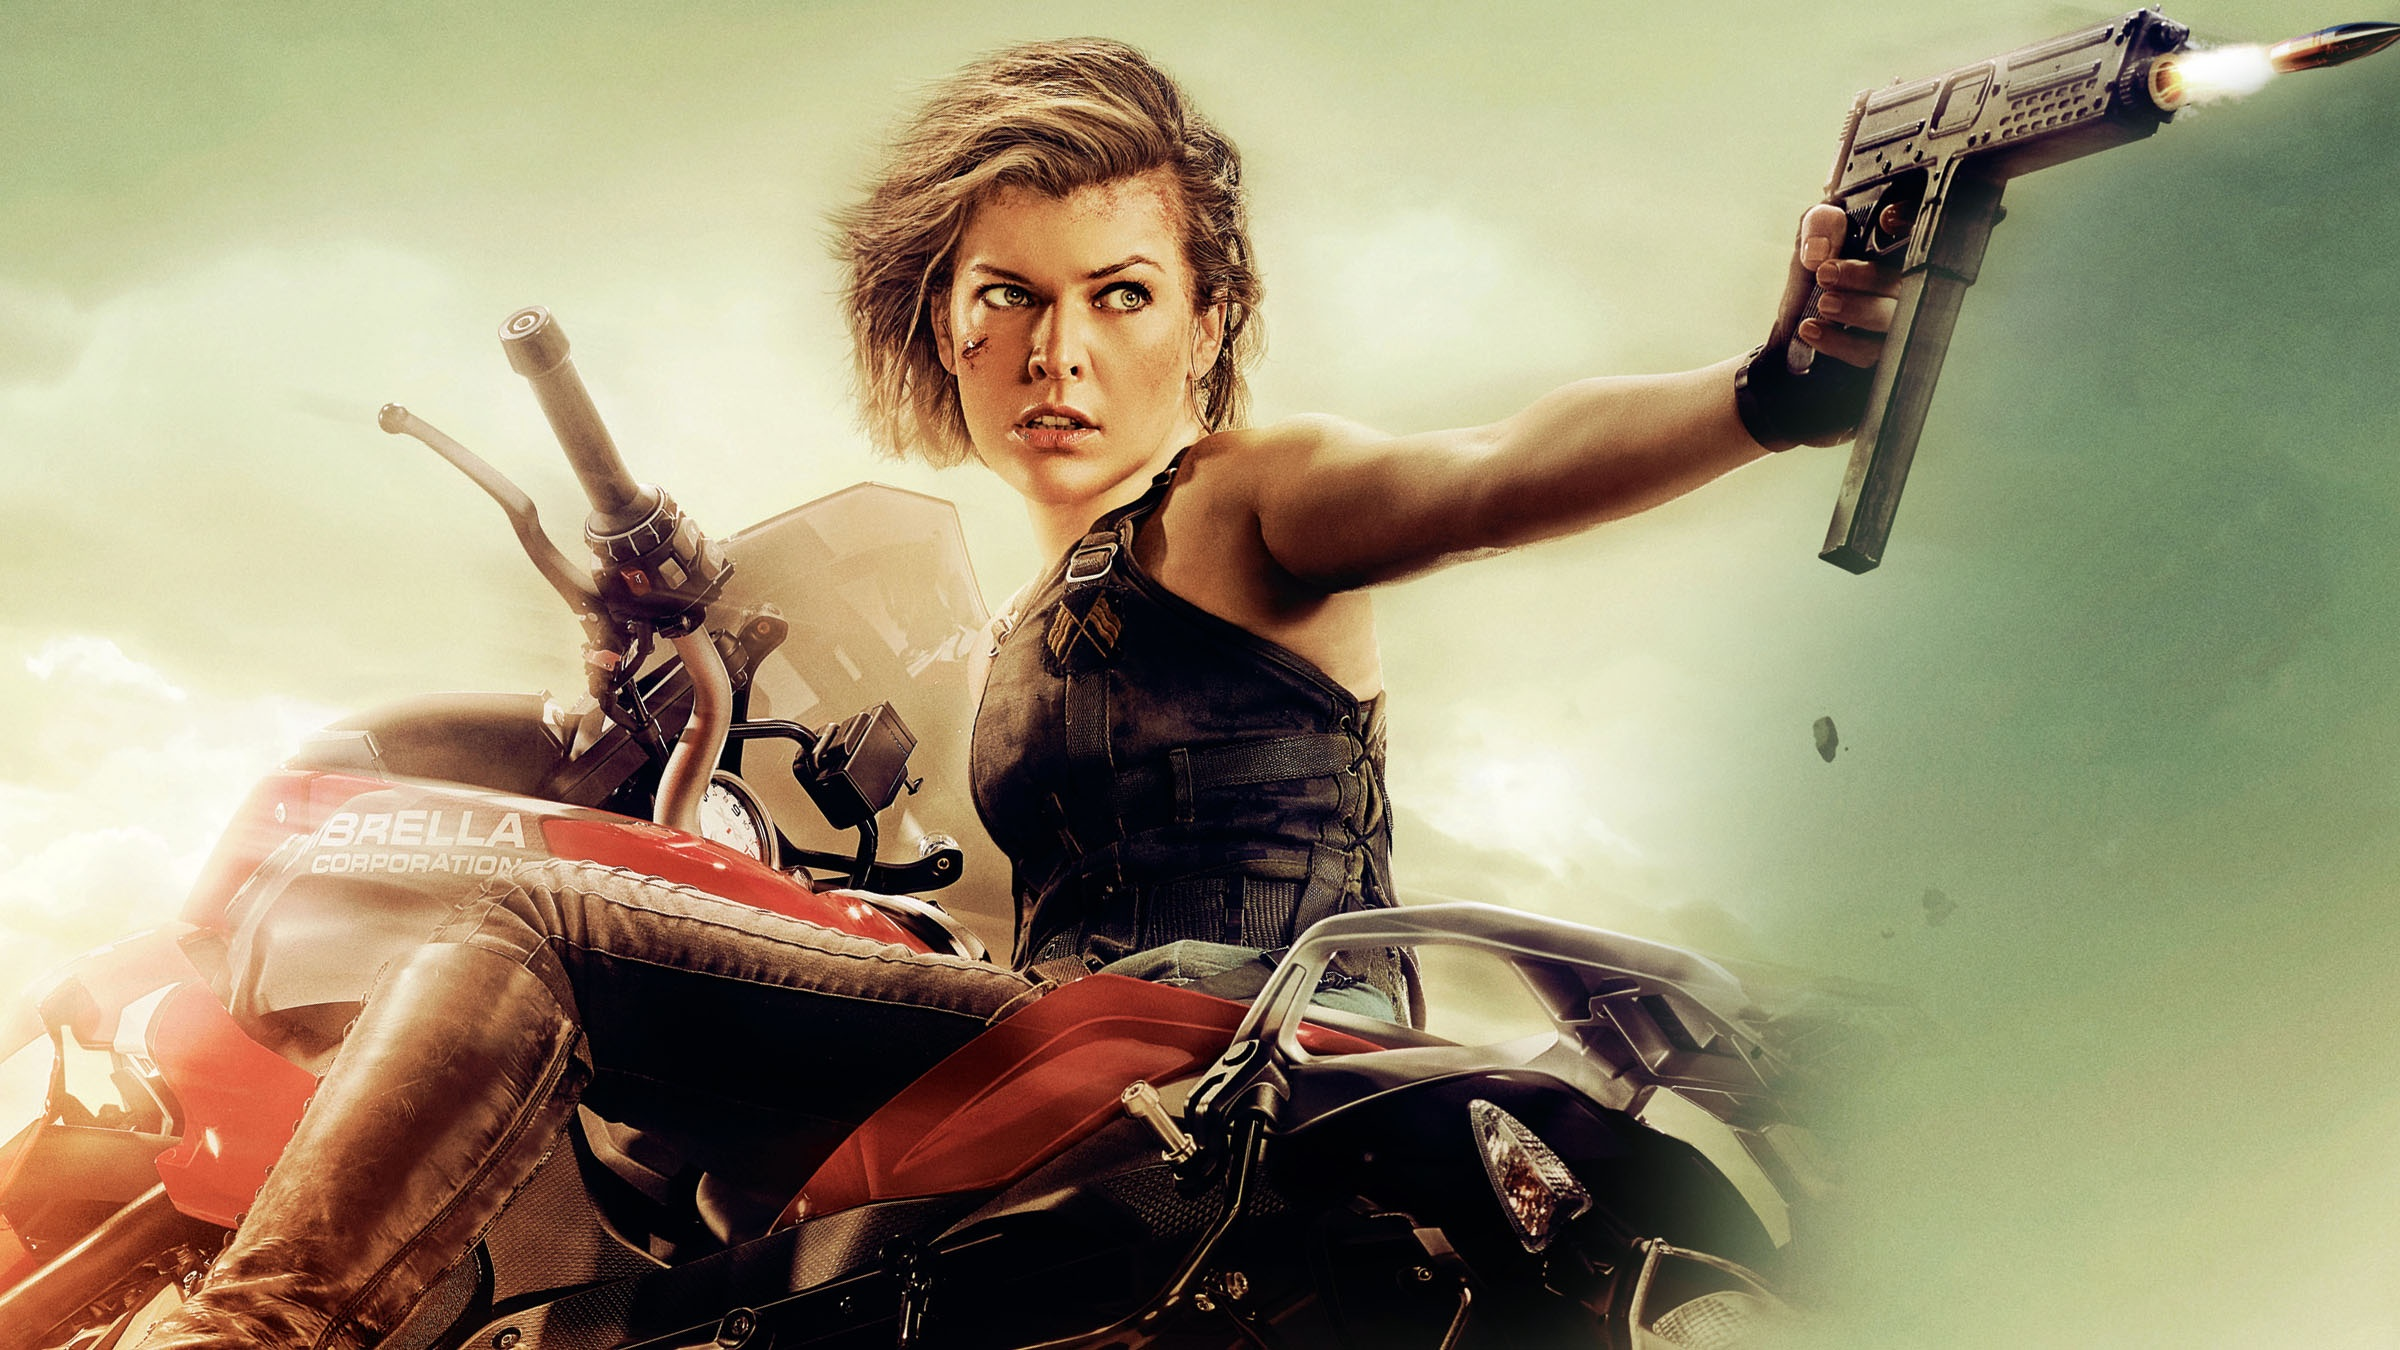 resident evil movies - HD2400×1350